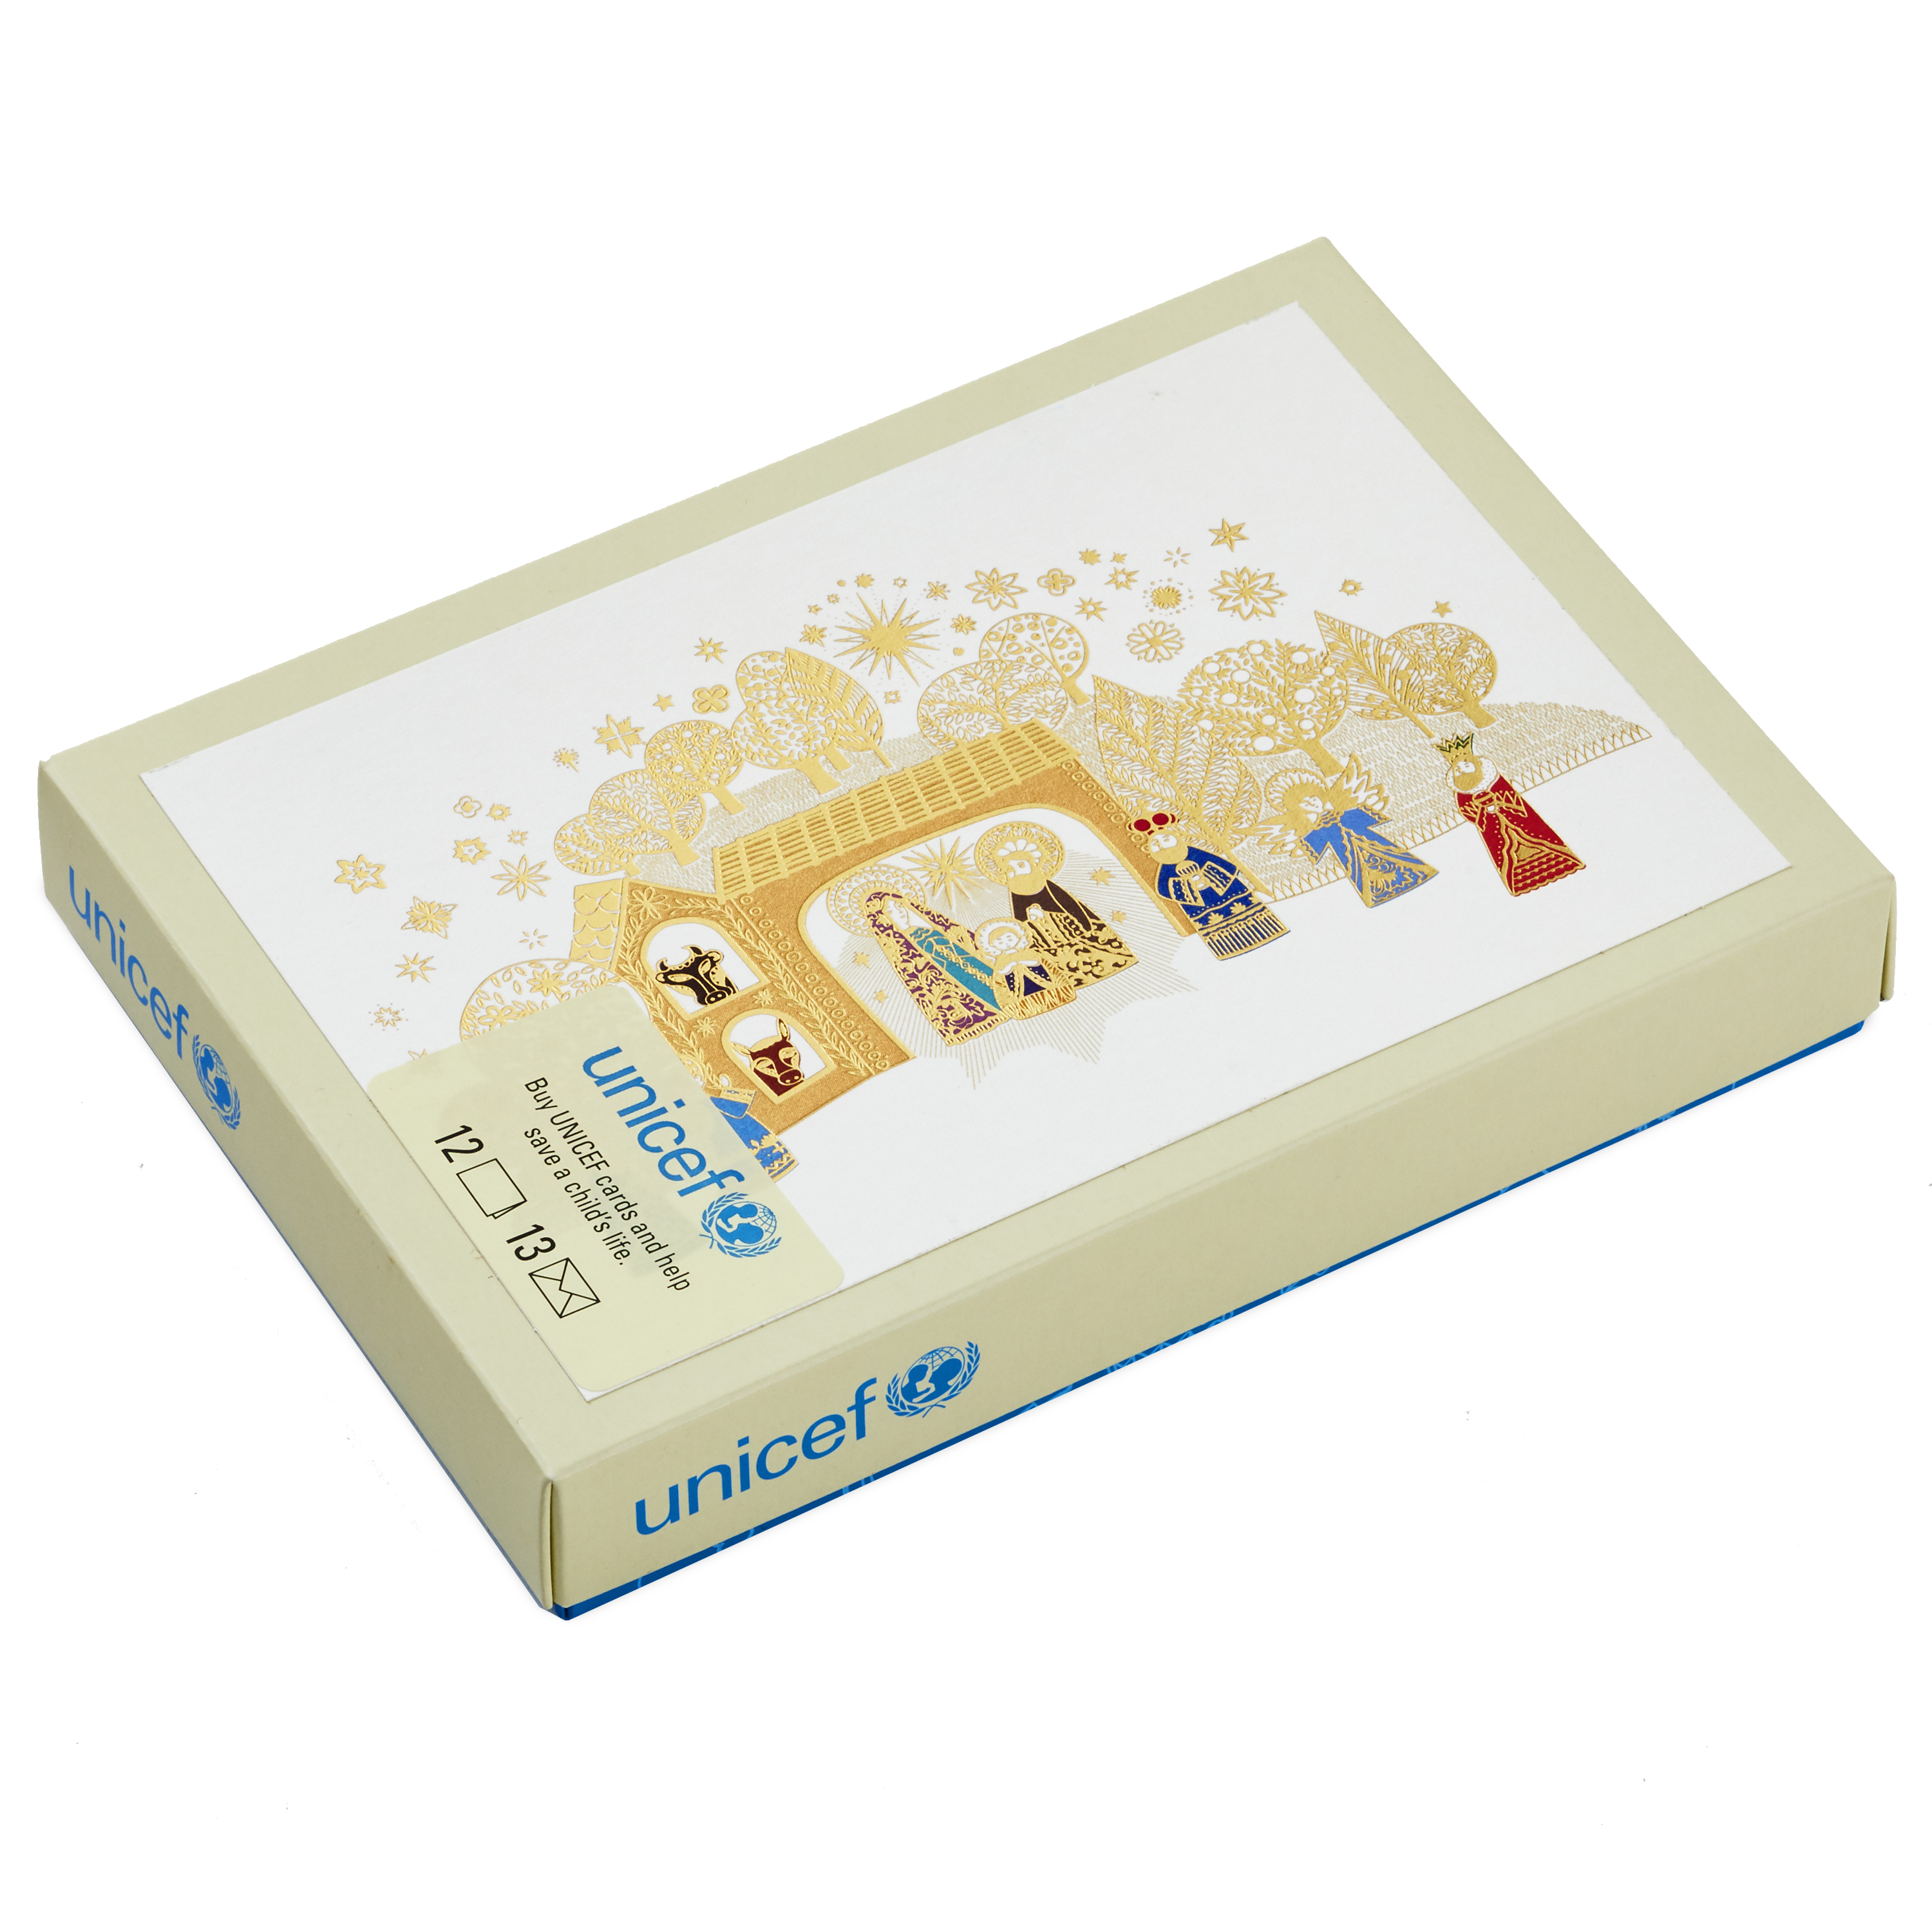 (12 Cards and 13 Envelopes) Hallmark UNICEF Christmas Boxed Cards, Gold Foil Nativity